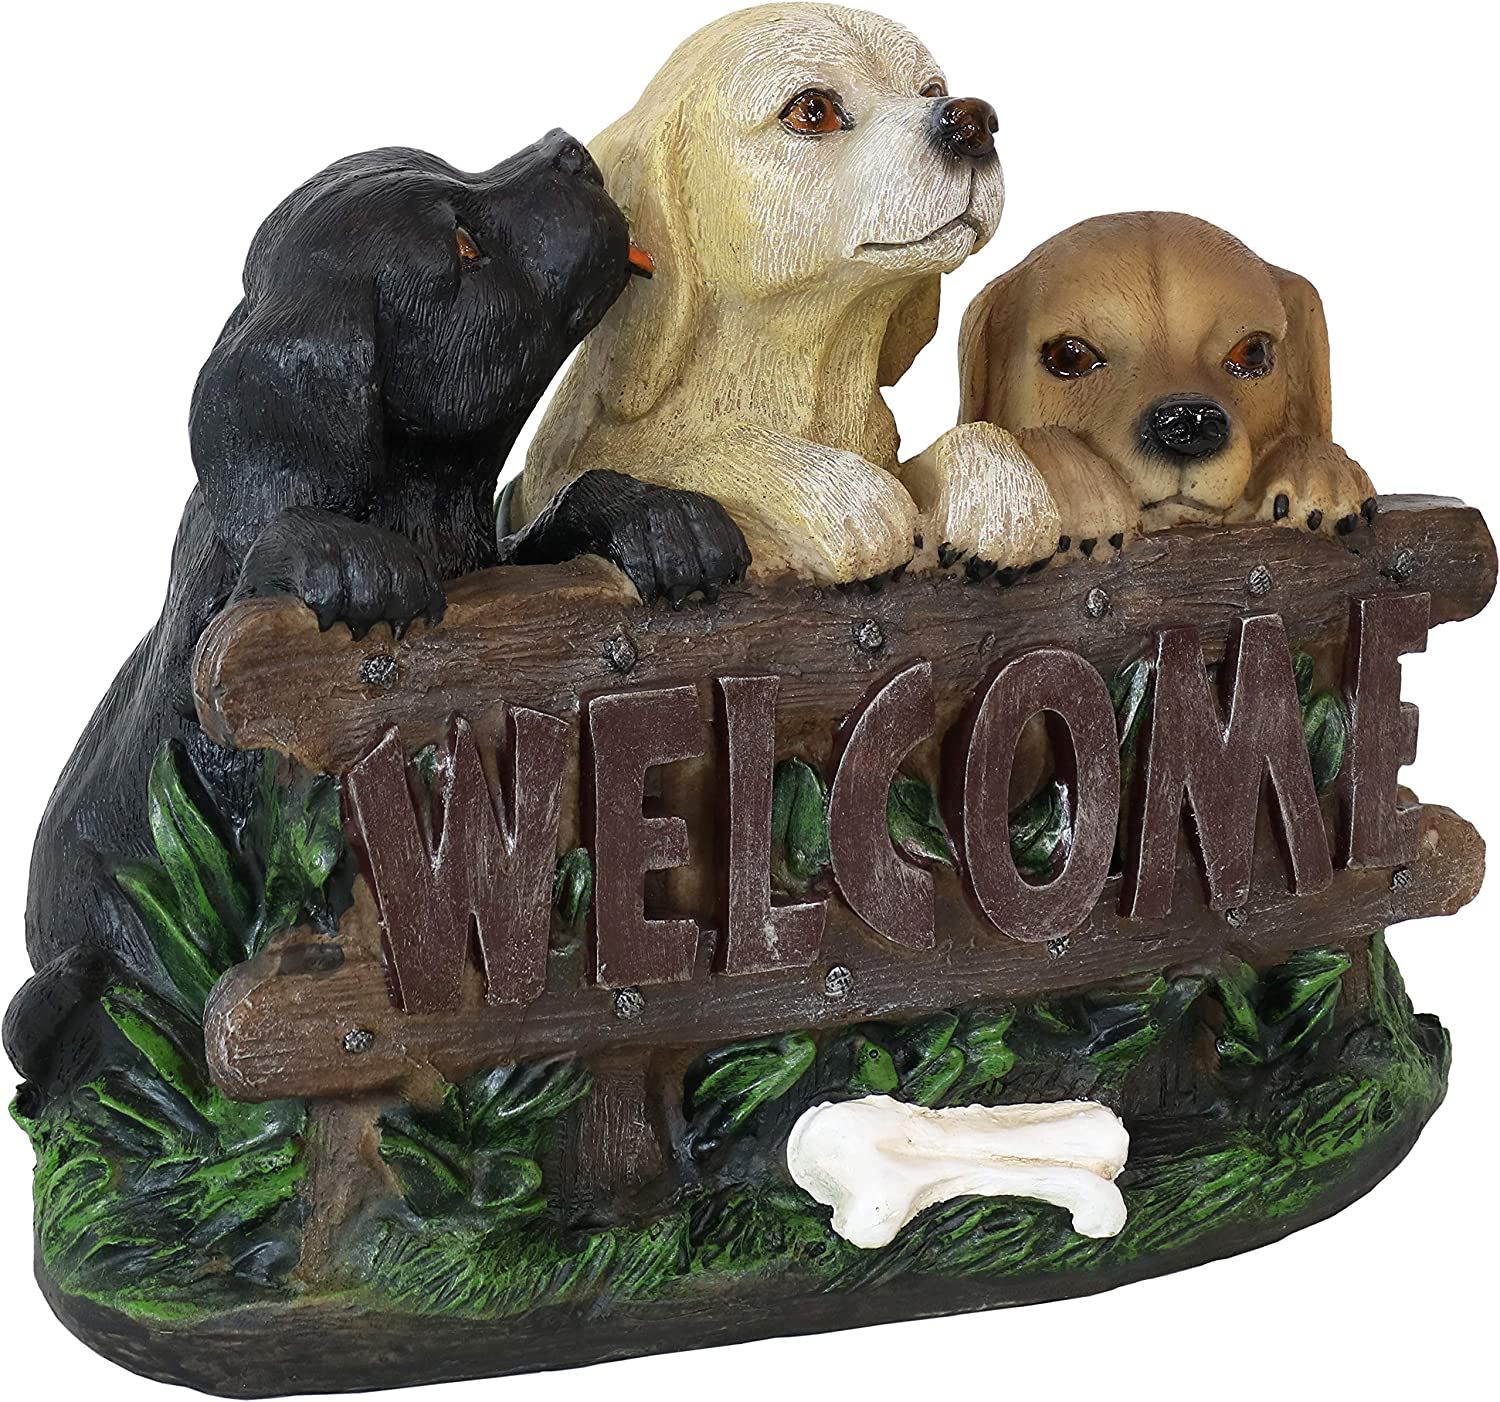 Sunnydaze Welcome Save ! Super beauty product restock quality top! money Statue Three Puppies Decor - Indoor Outdoor Pa